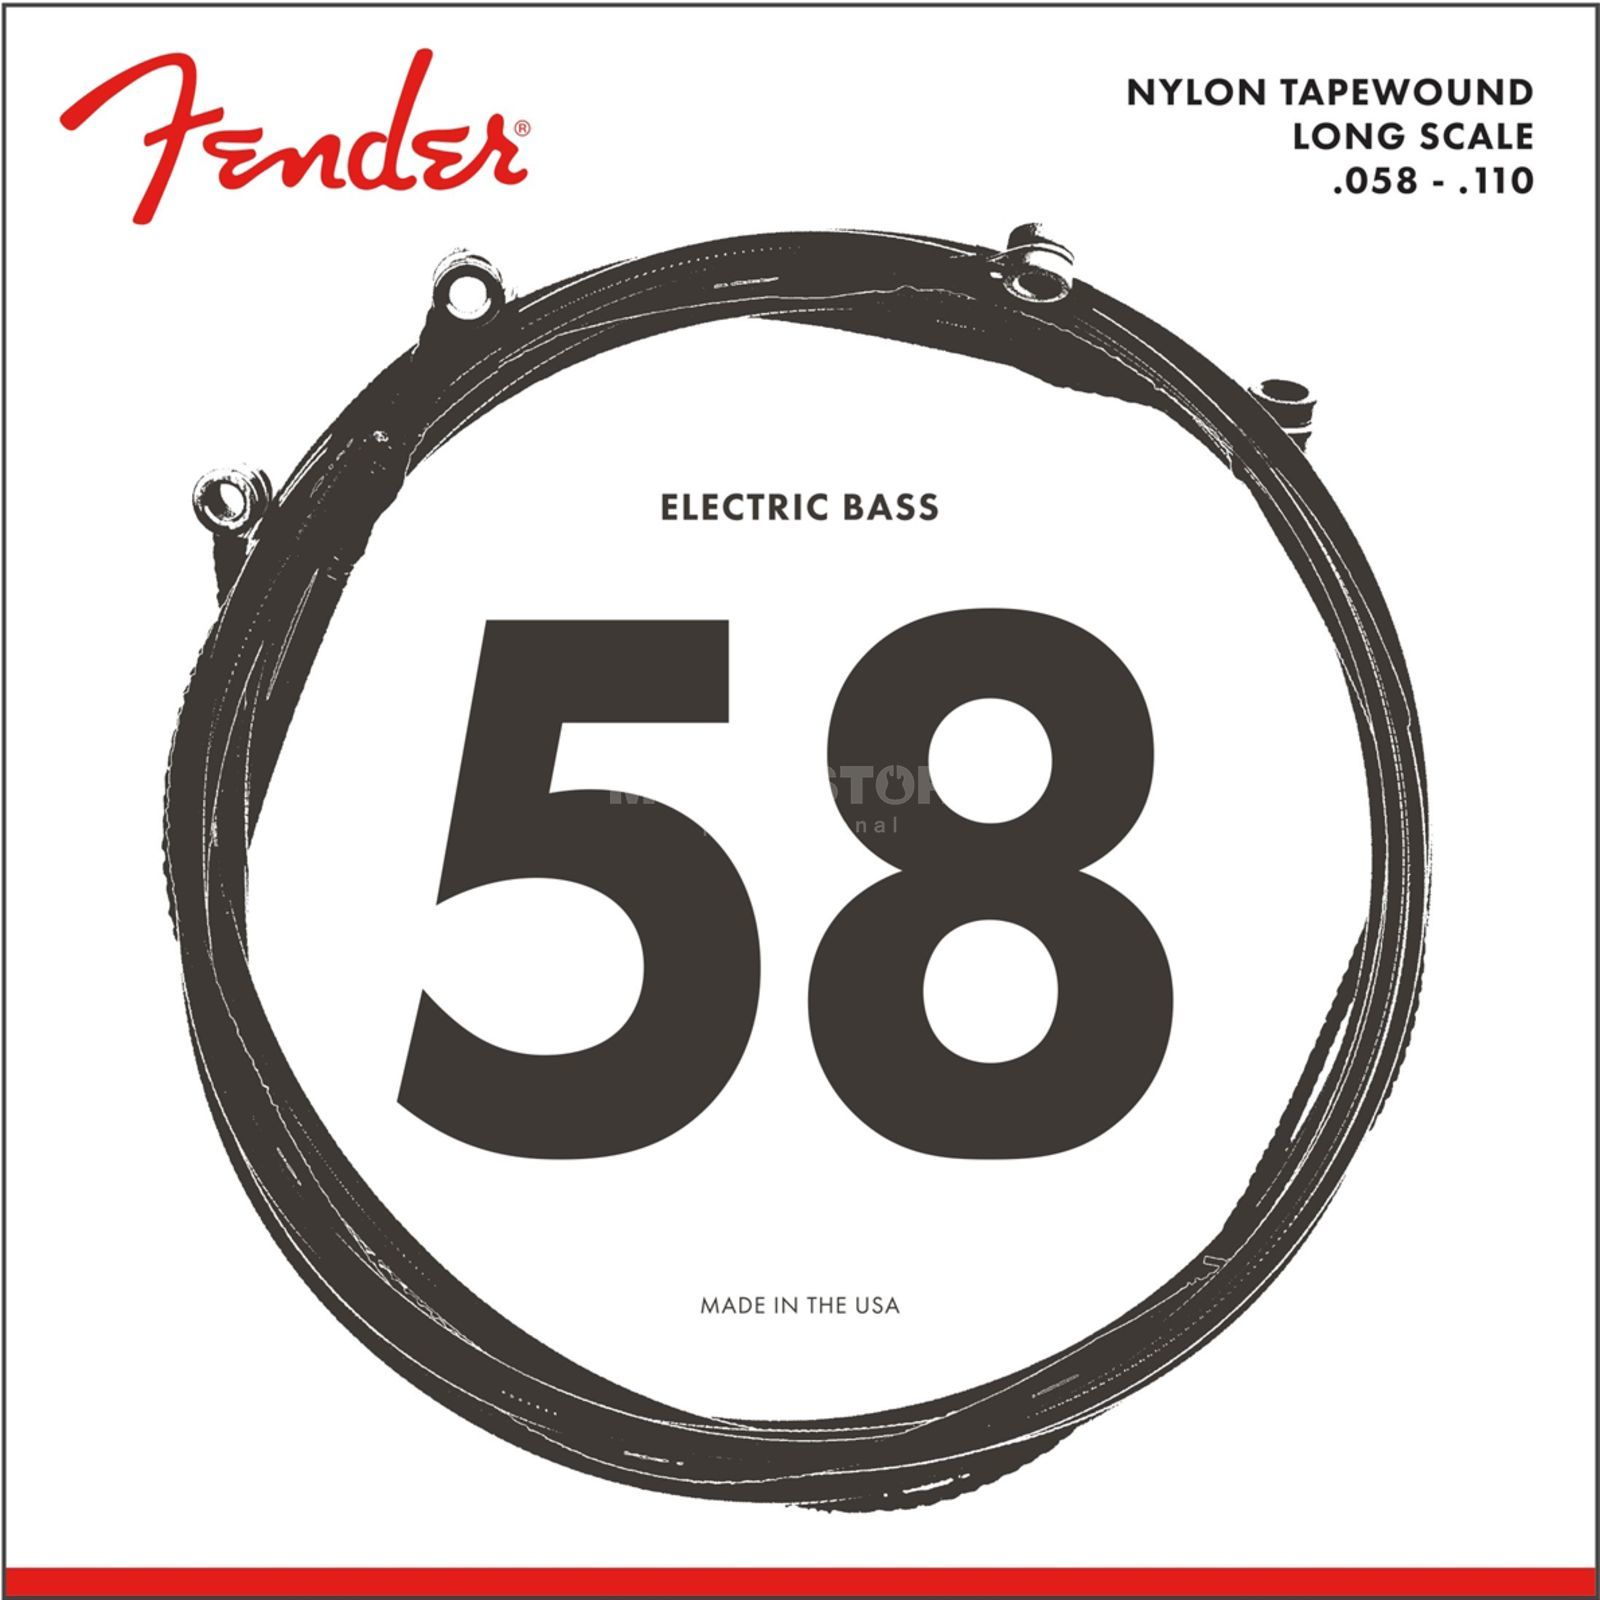 Fender Strings Nylon 9120 58-110 Nylon Tape Wound Product Image